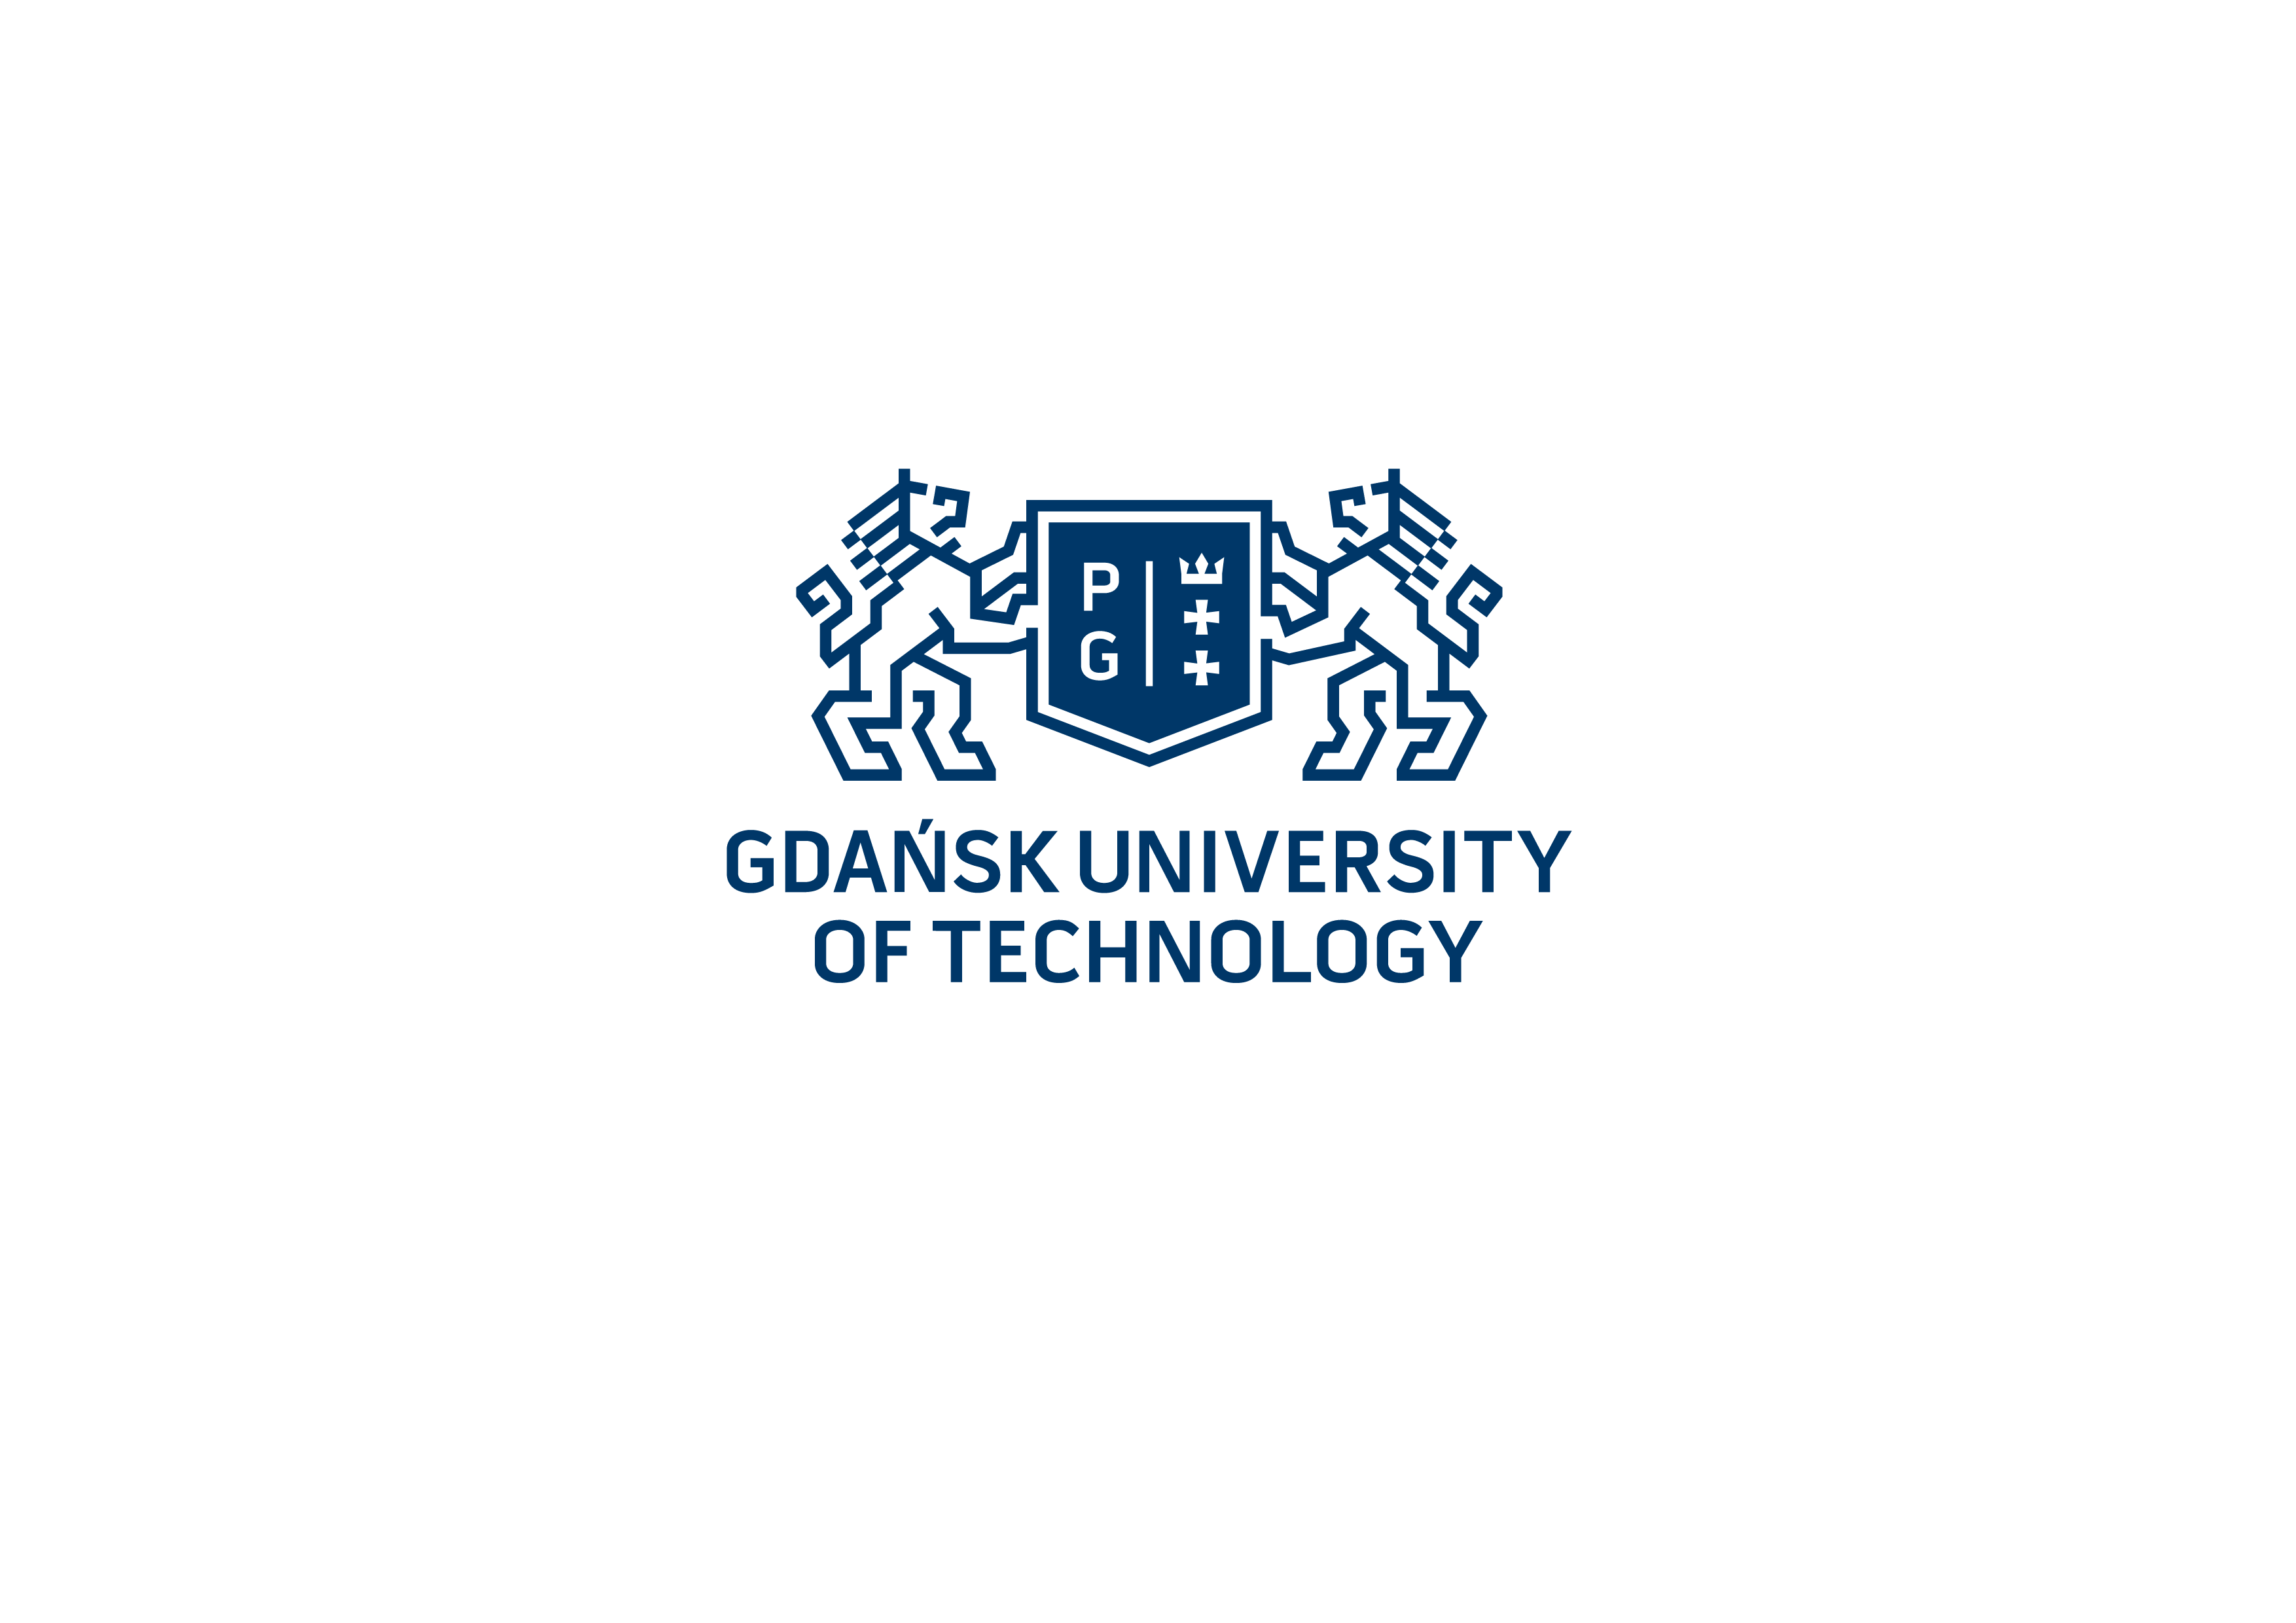 logo Gdańsk University of Technology